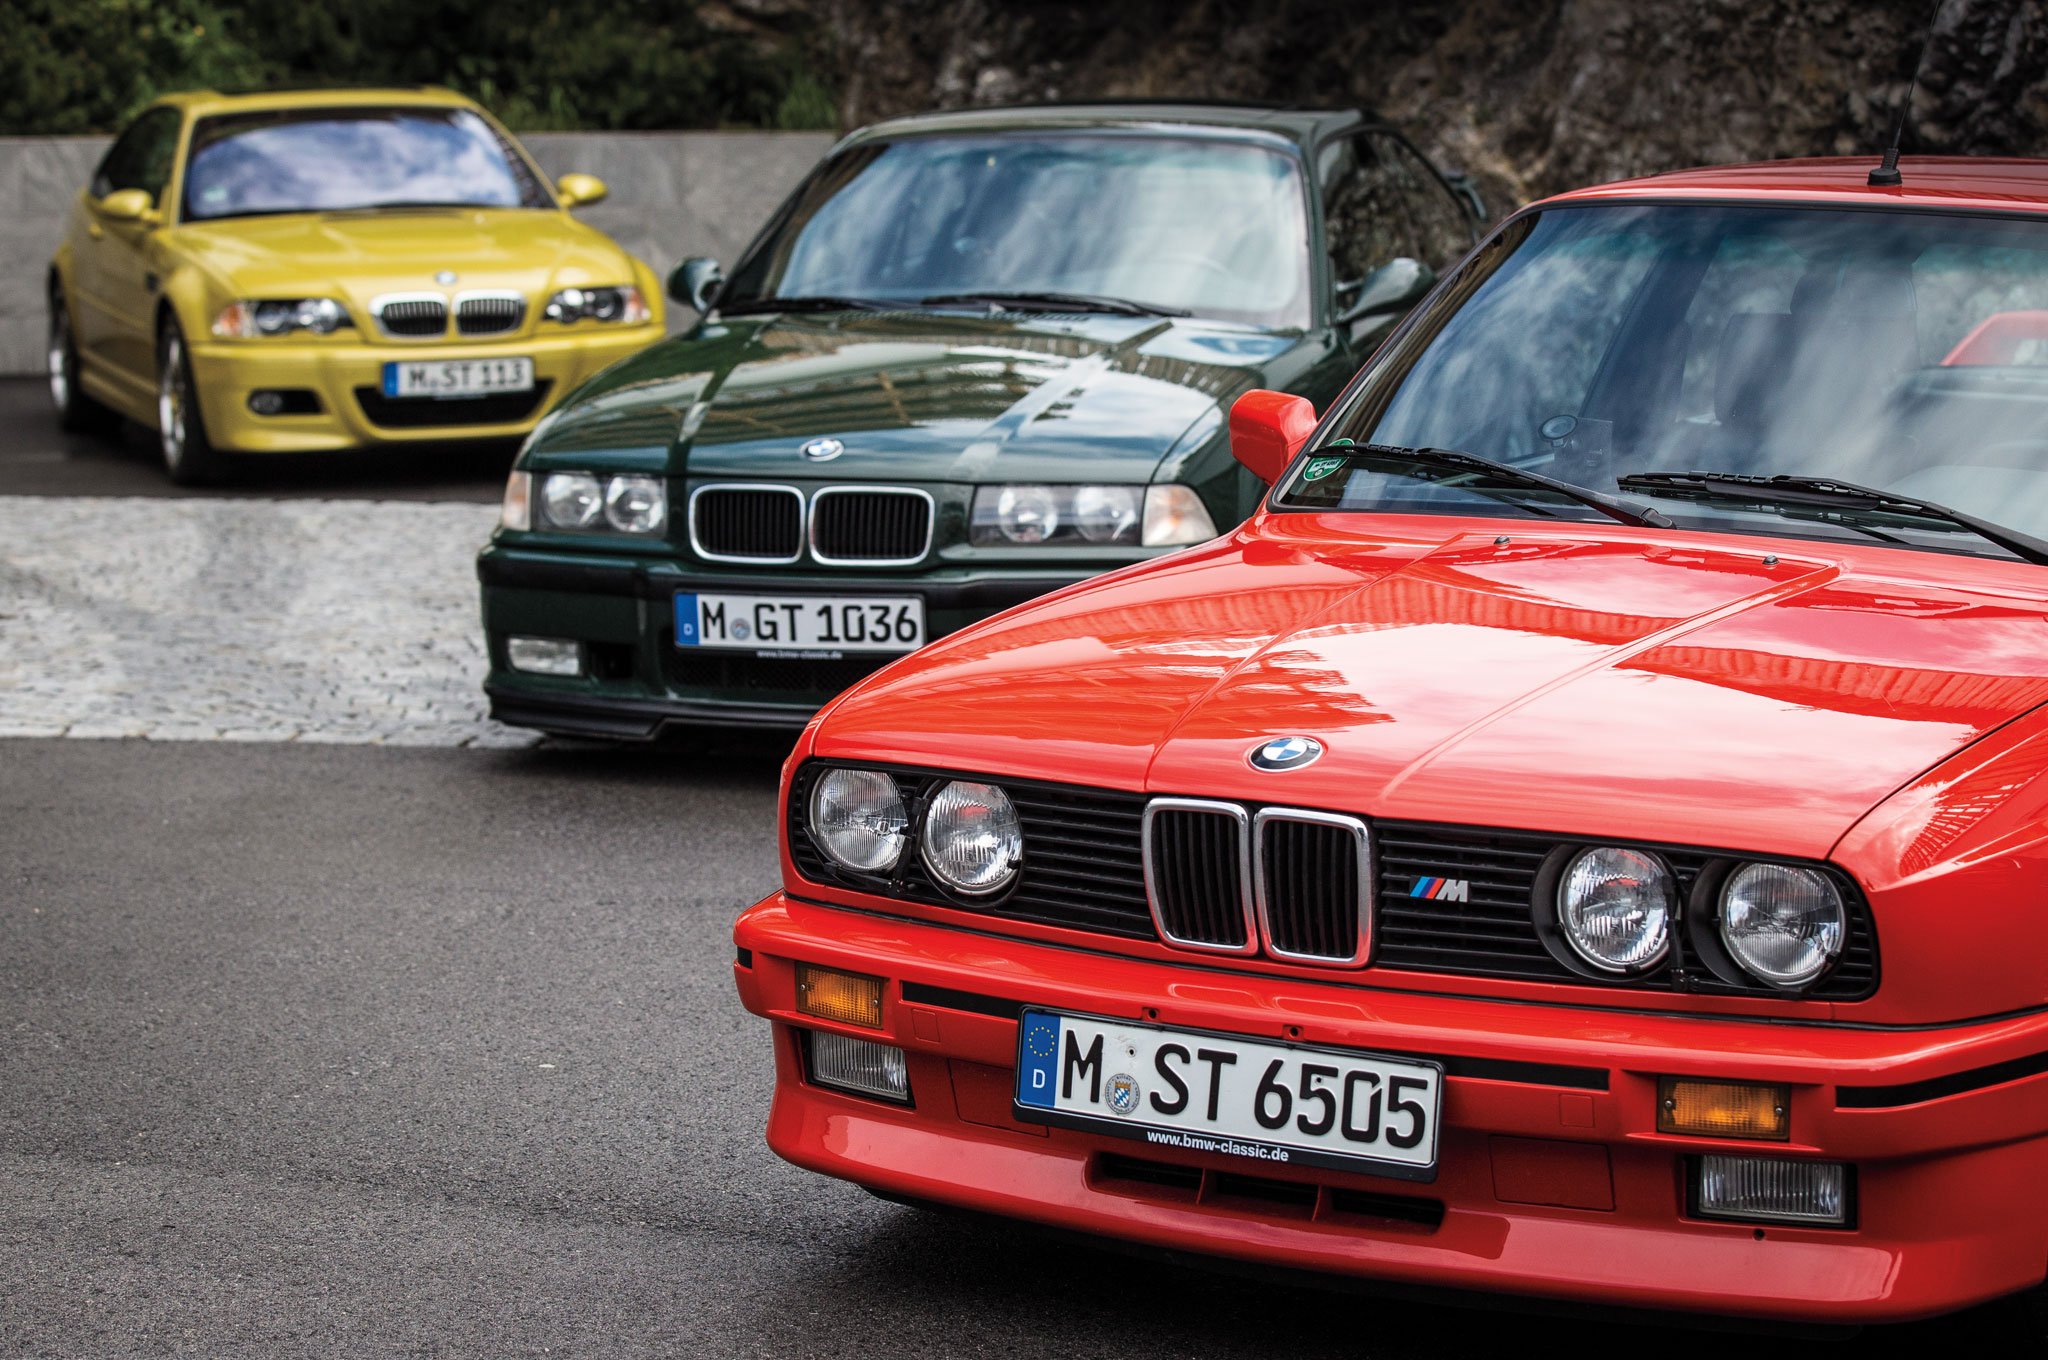 The shape of the BMW twin-kidney grille has changed over the years, and so has the spirit within the M3.